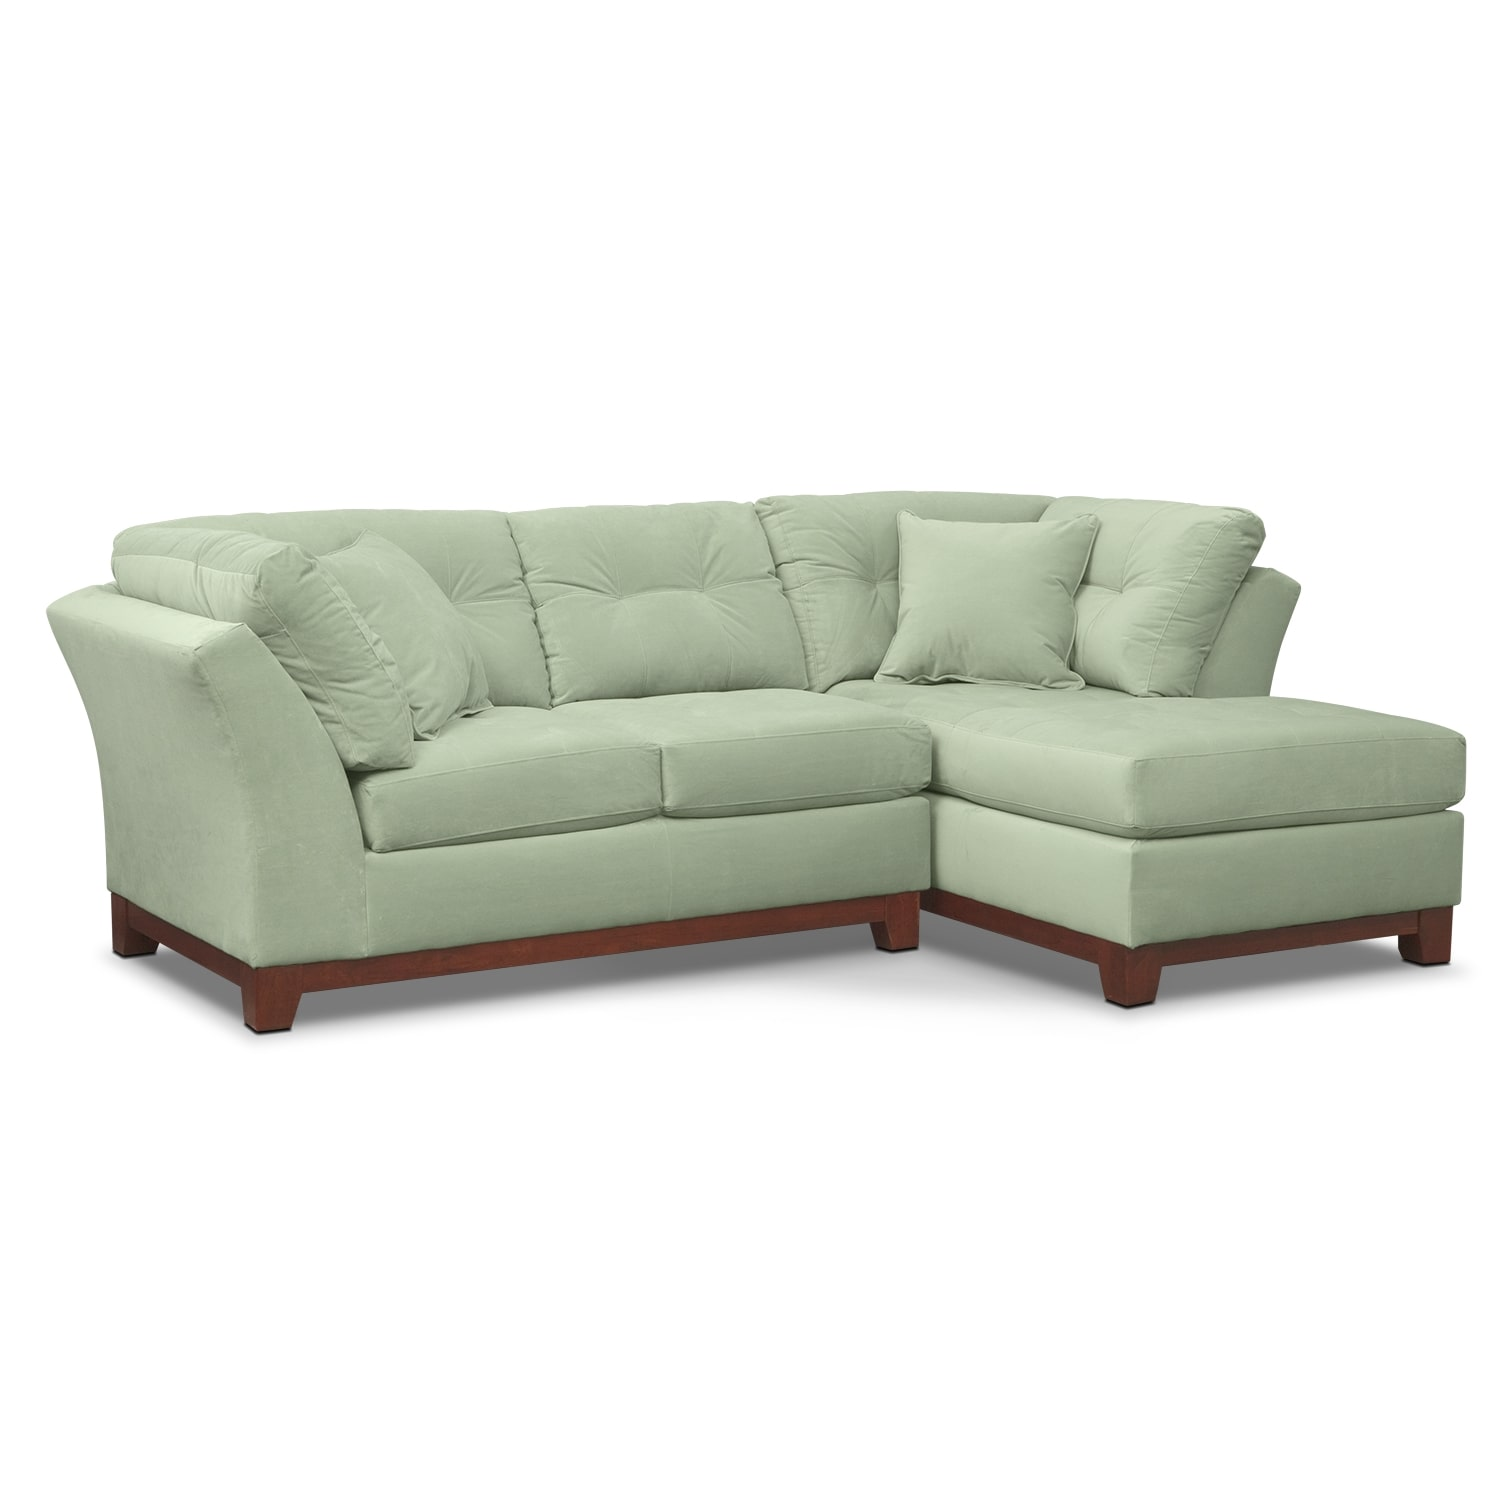 Solace 2-Piece Right-Facing Chaise Sectional - Spa